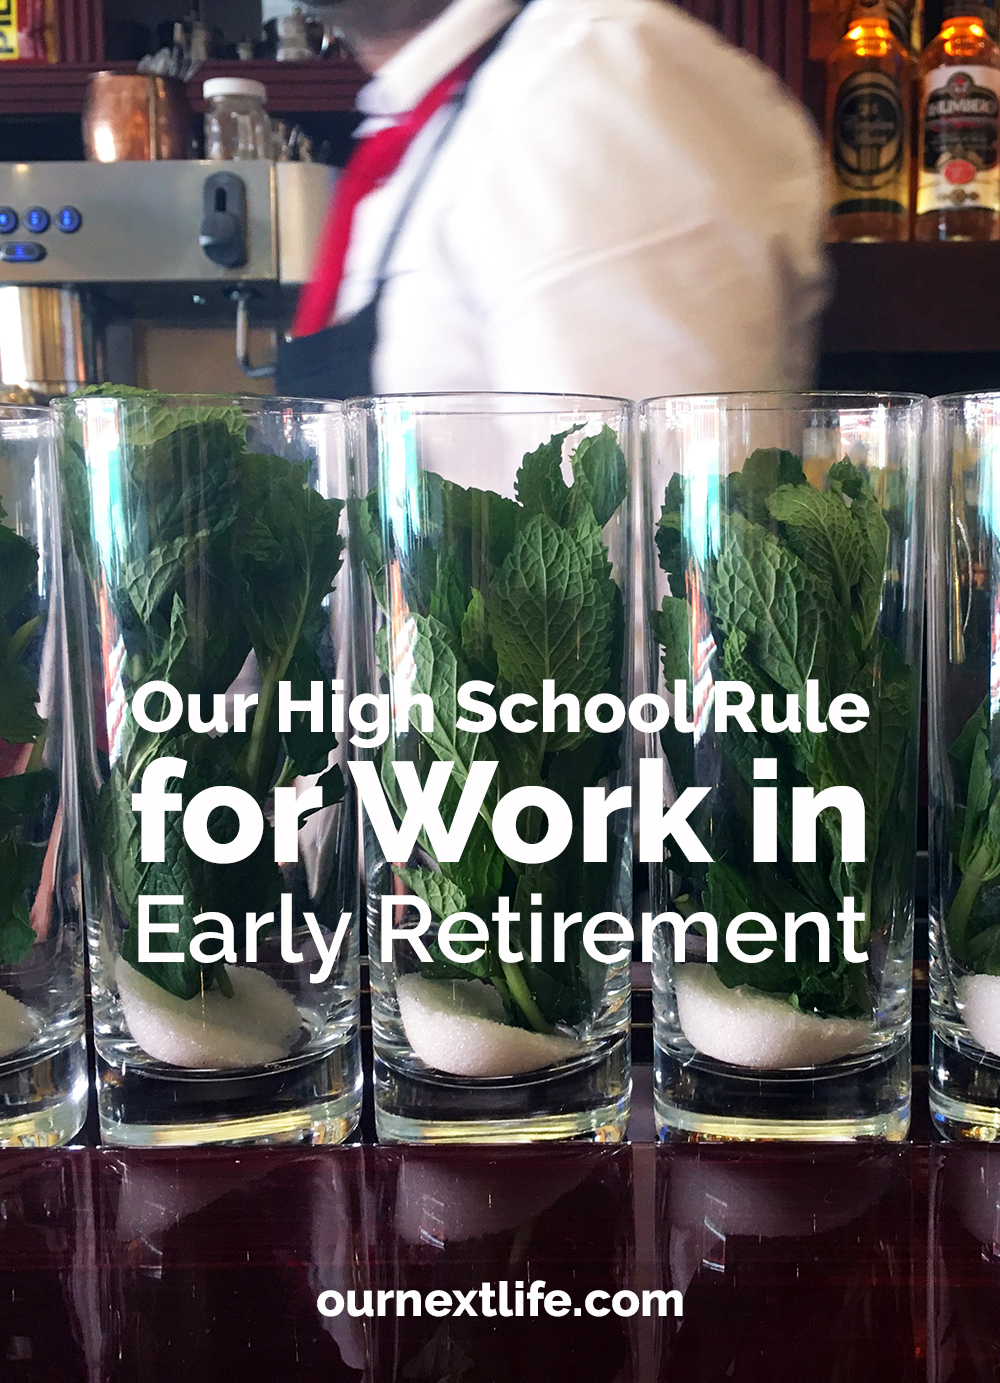 Our high school rule for work in early retirement // Deciding what work we'd happily choose to do for free, and not let money be a factor